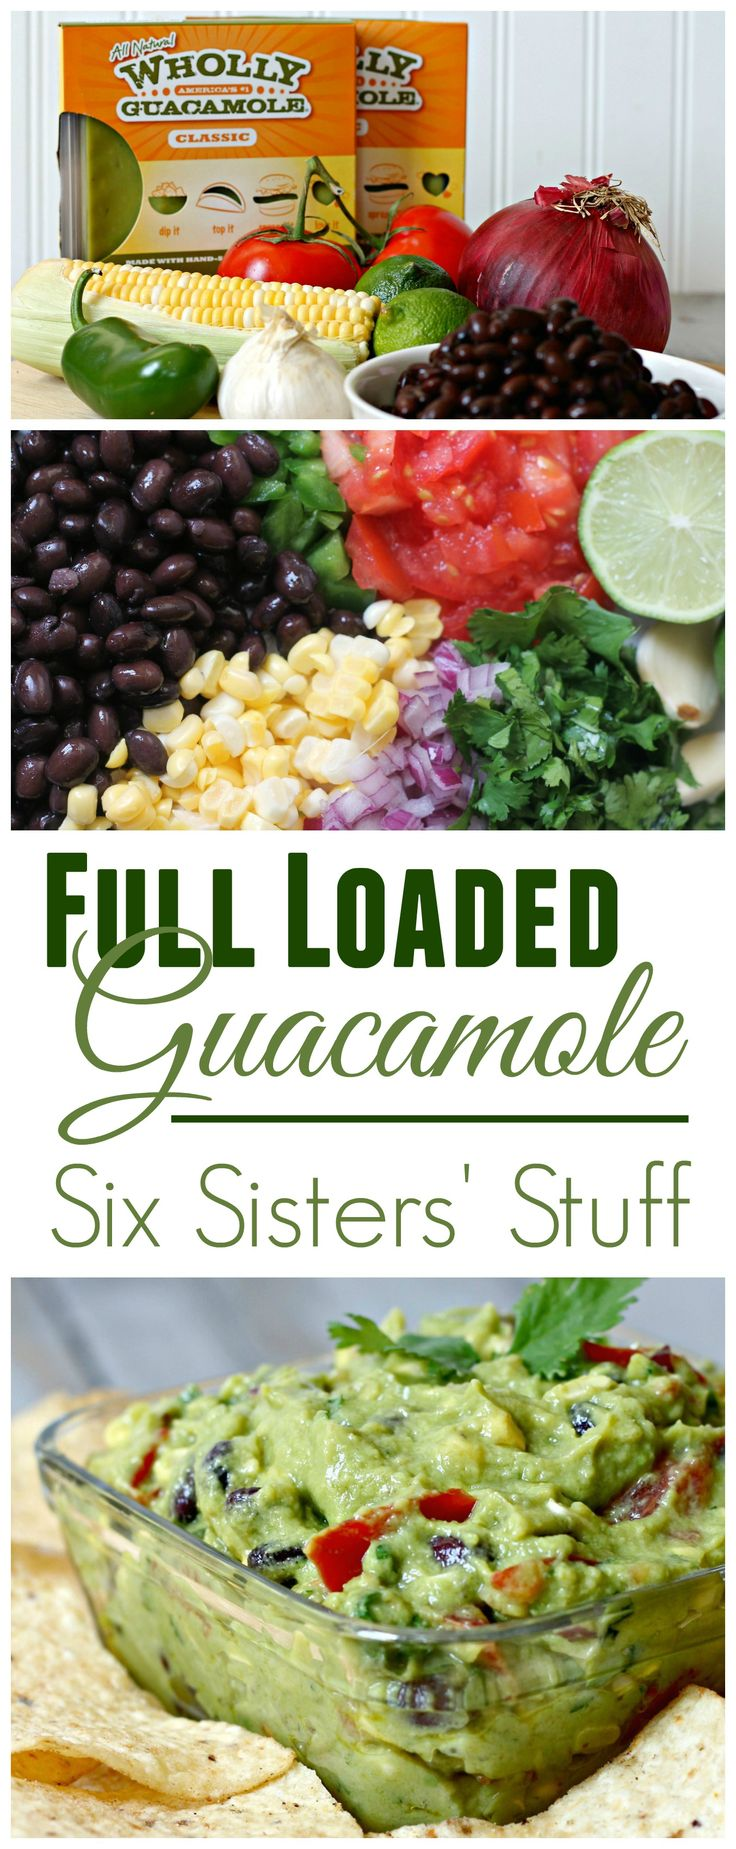 Fully Loaded Guacamole from Sixsistersstuff.com